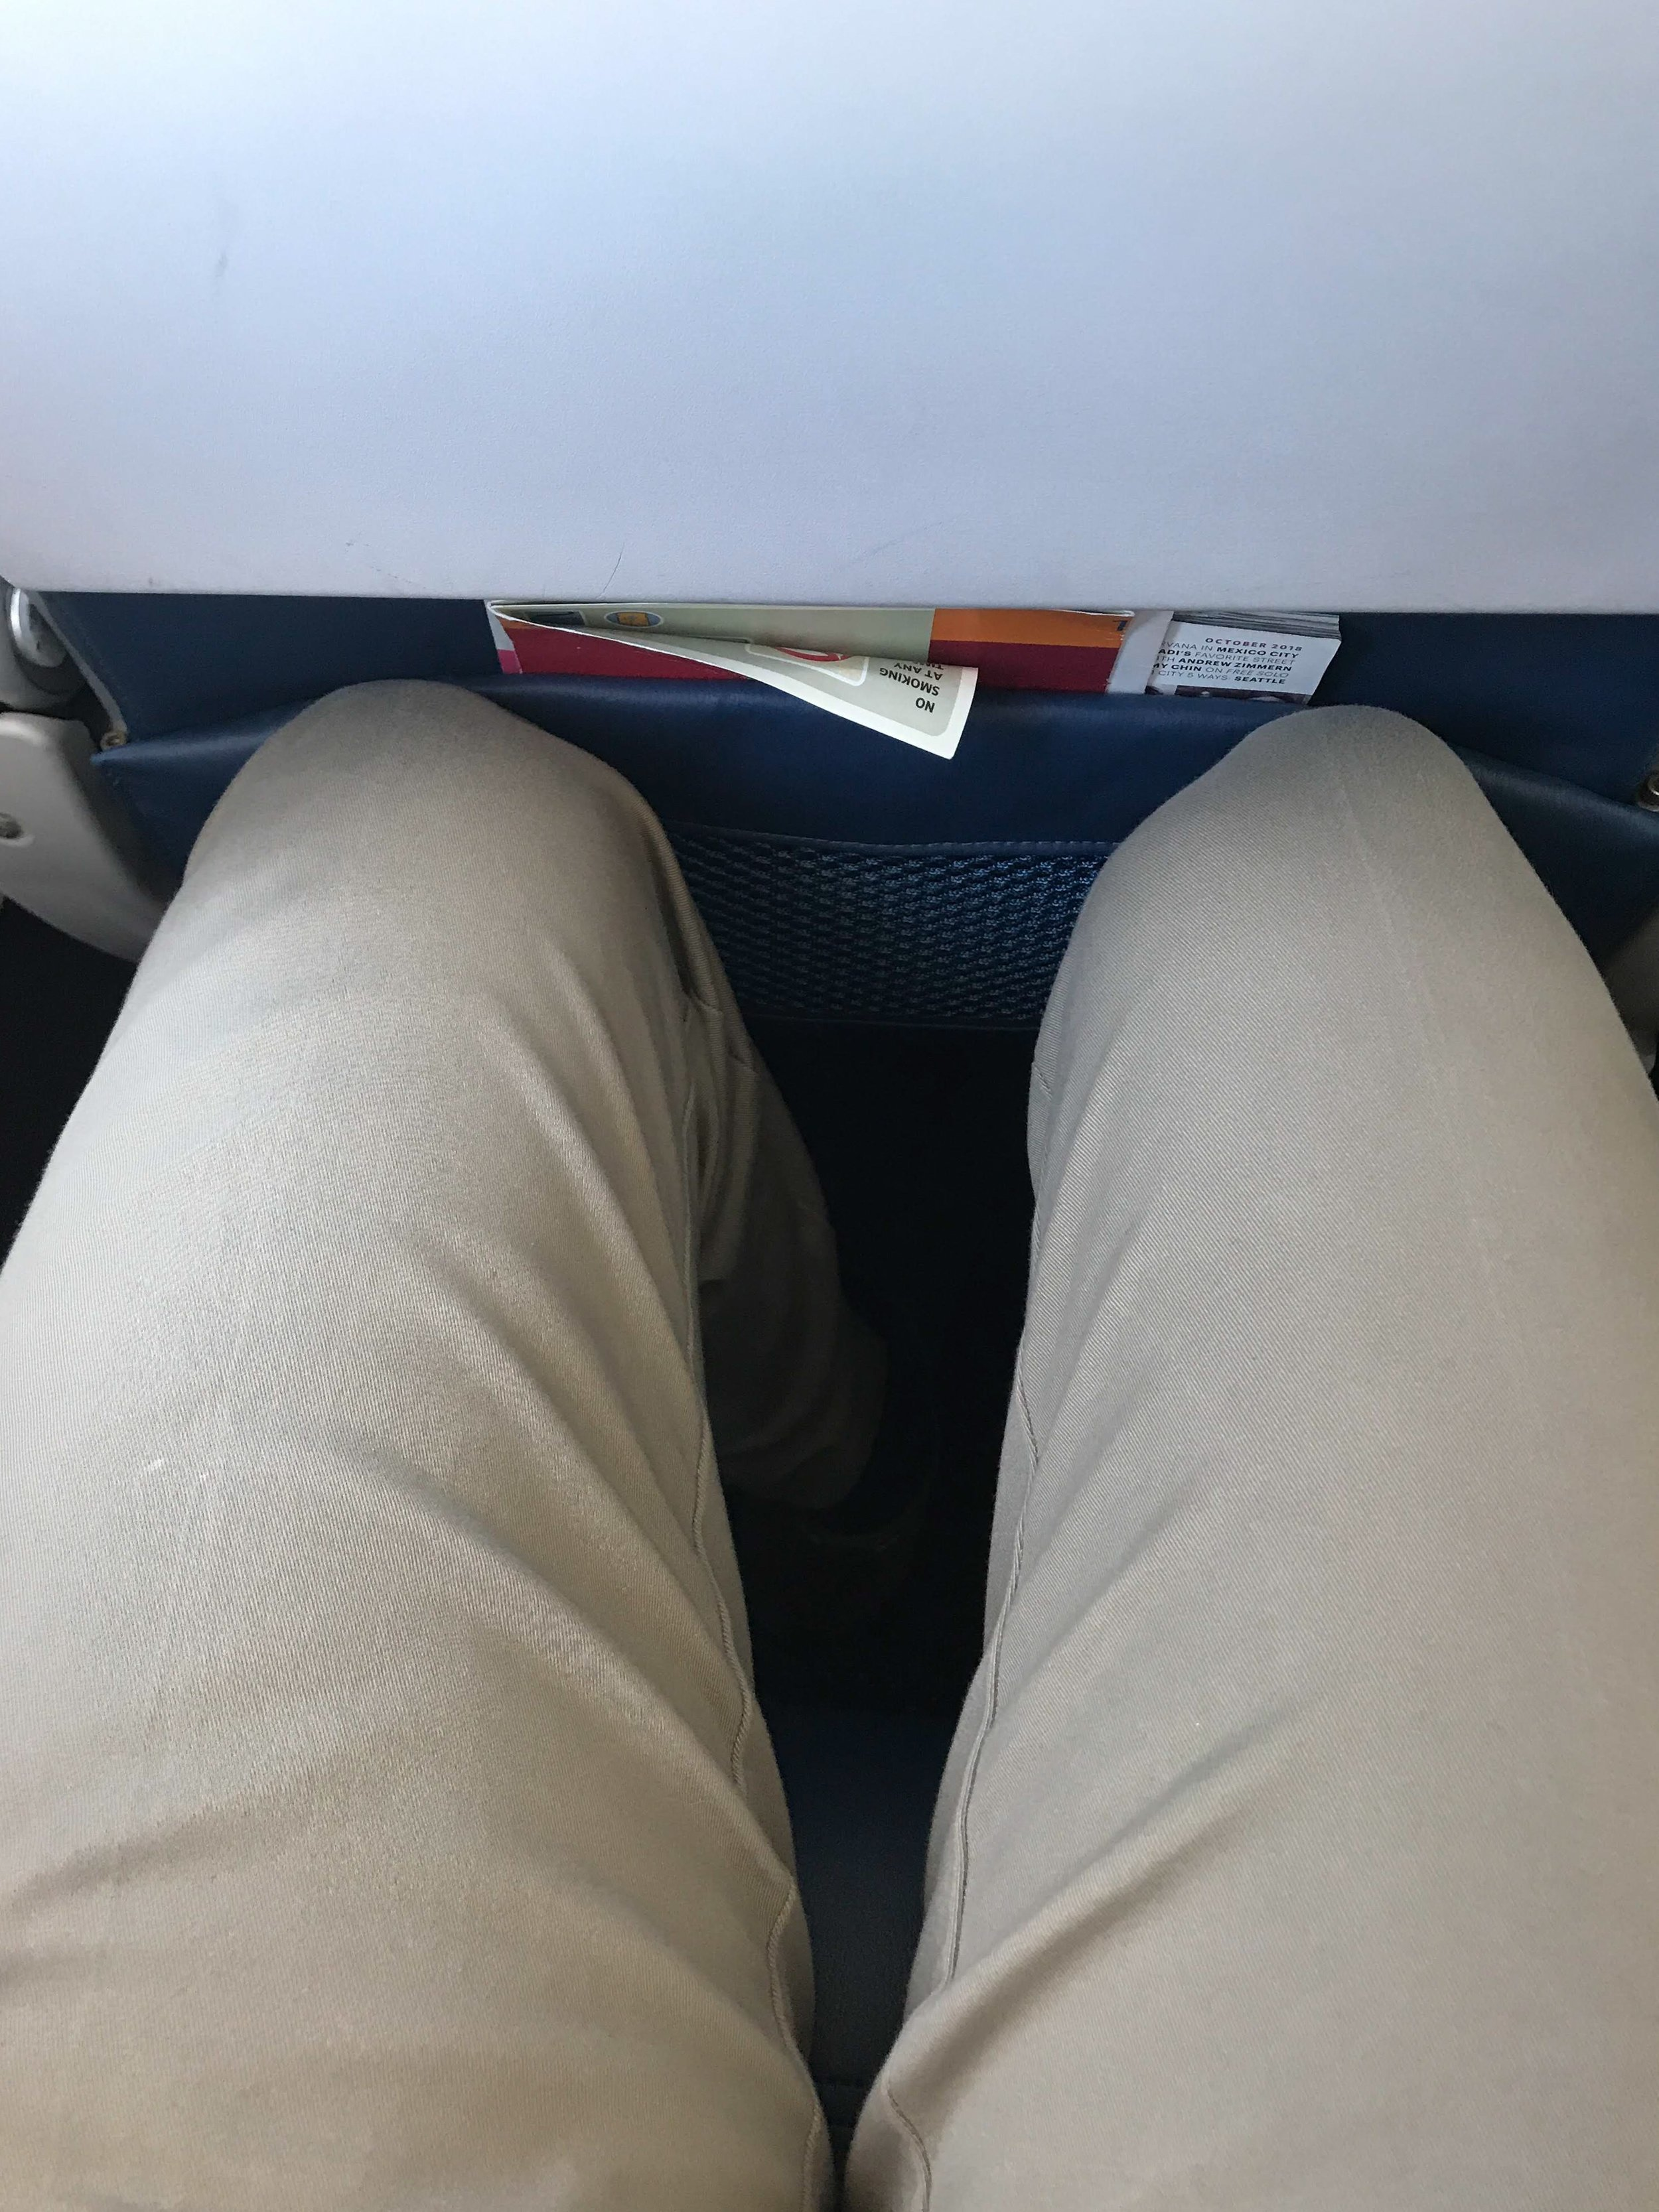 The legroom was tight, but no different than Delta's other aircraft types or economy seats on other legacy U.S carriers.